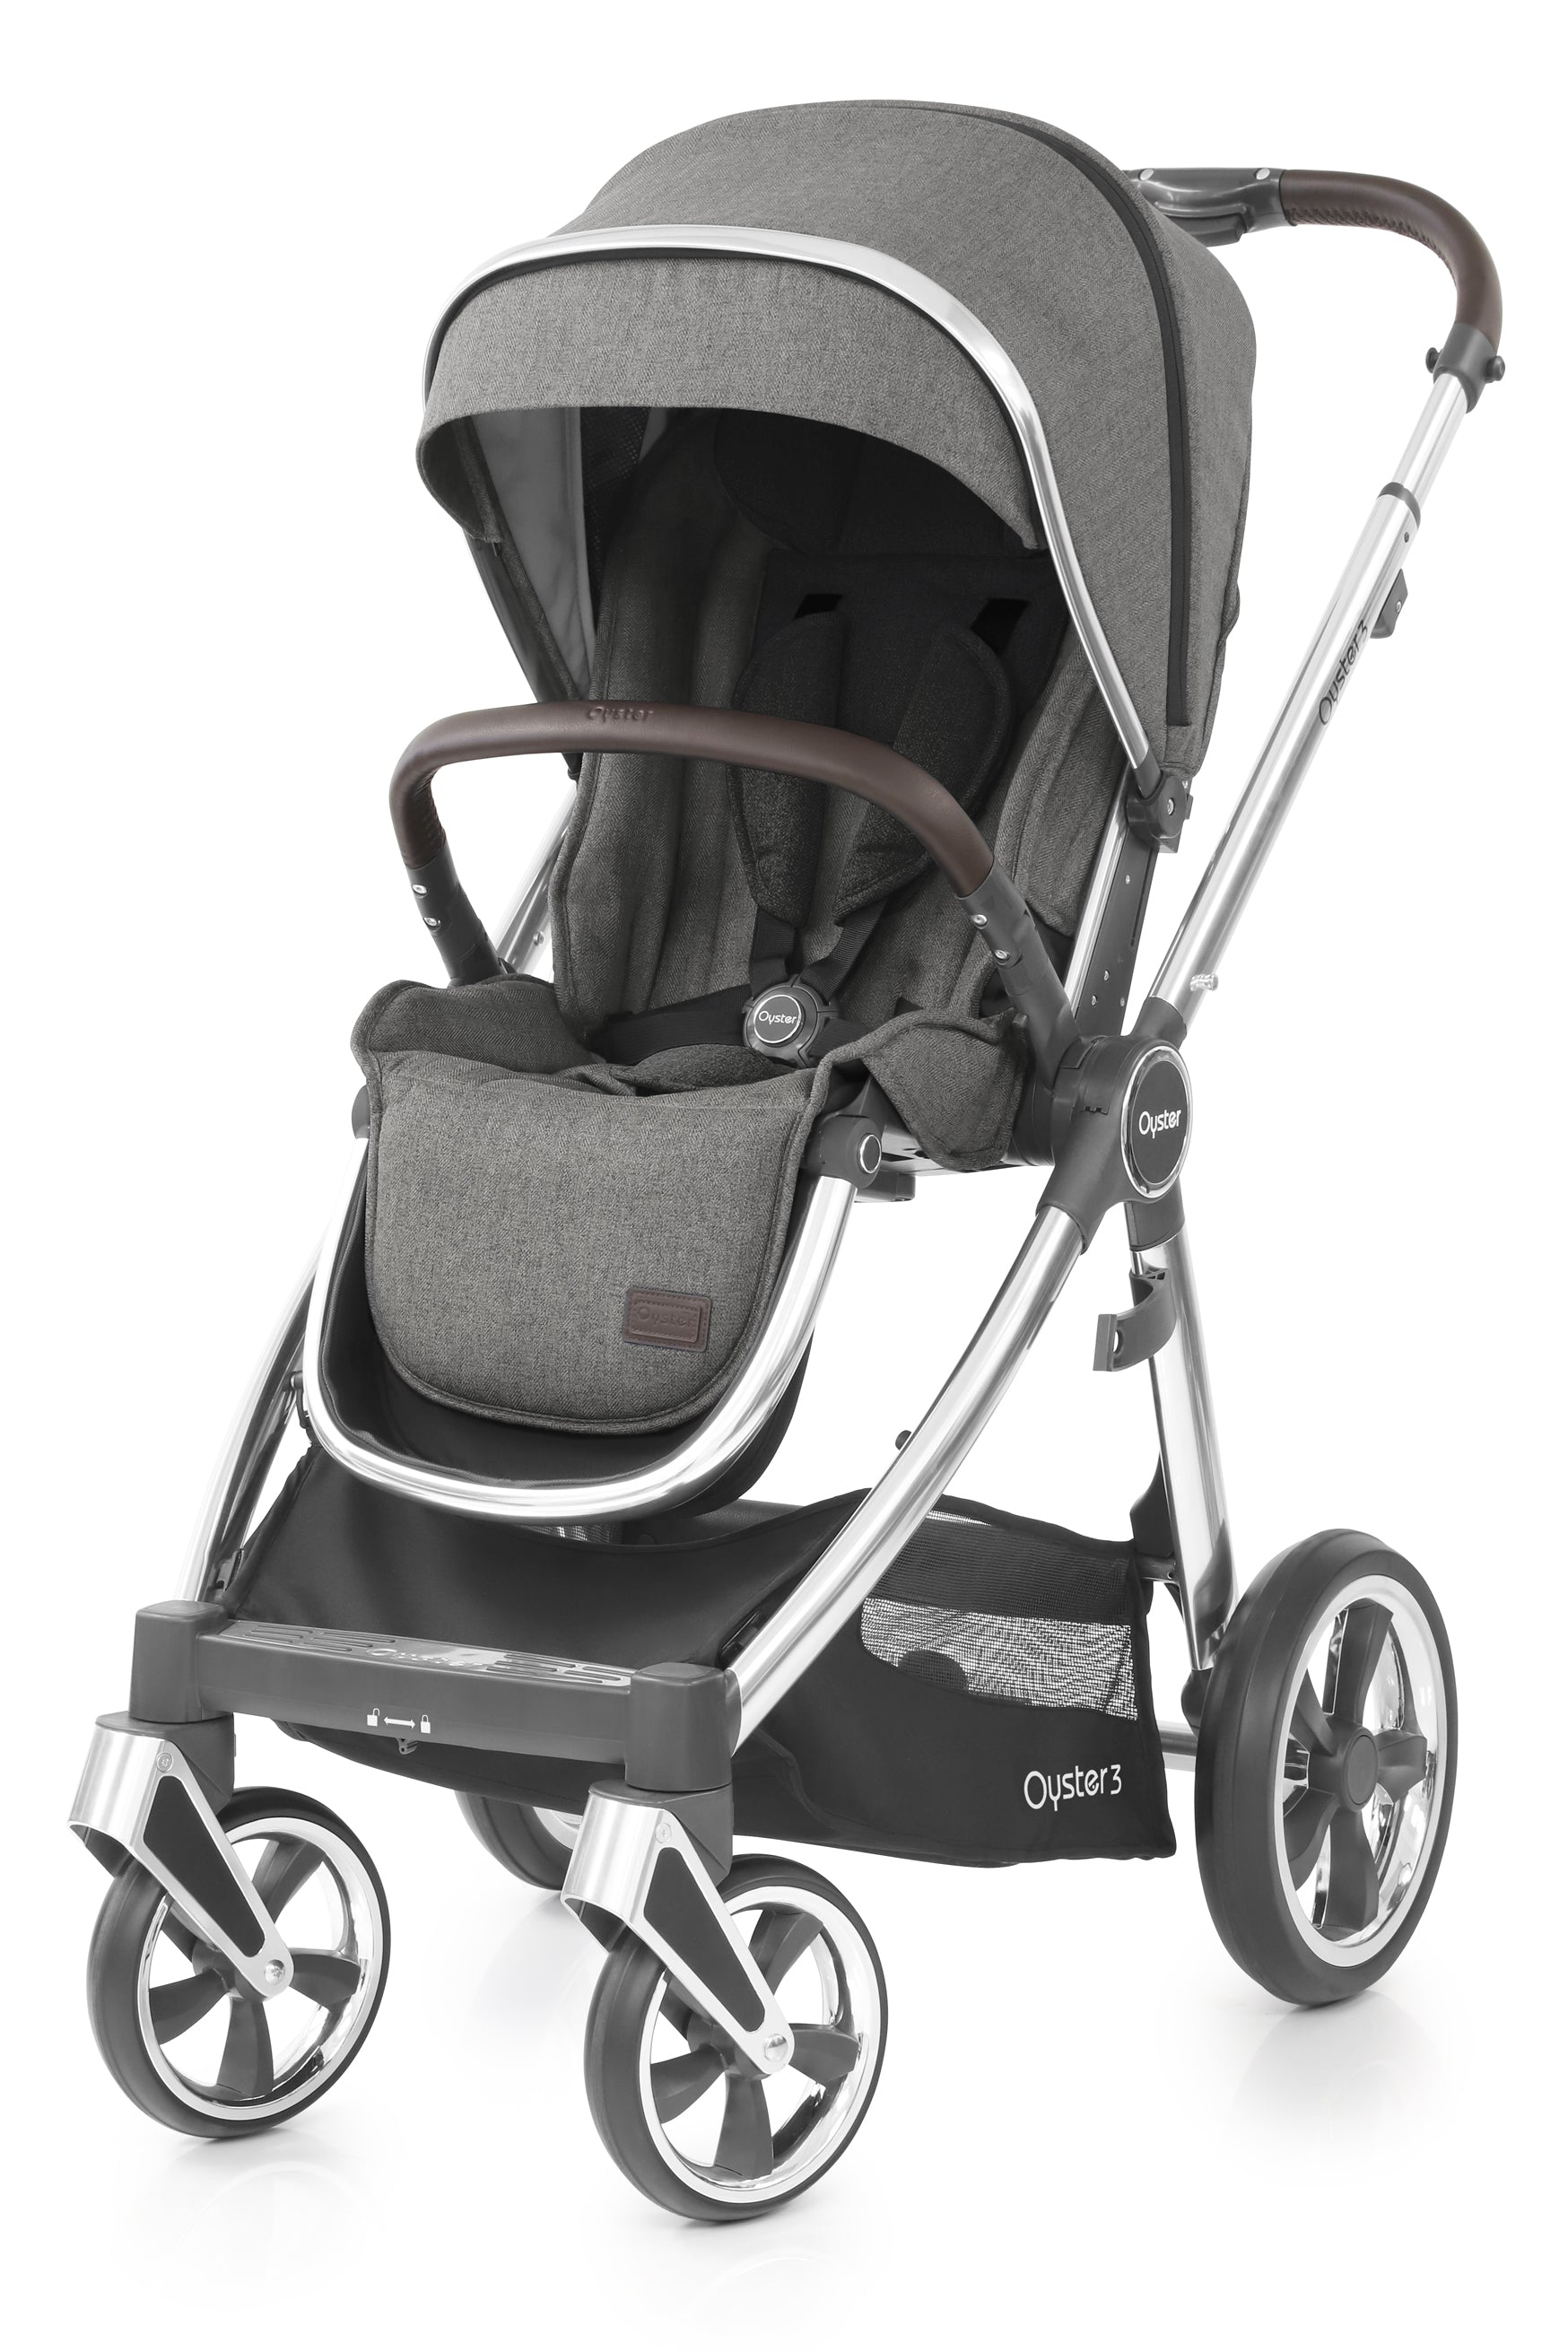 BabyStyle Oyster 3 Luxury Bundle With Tinca Car Seat and Base